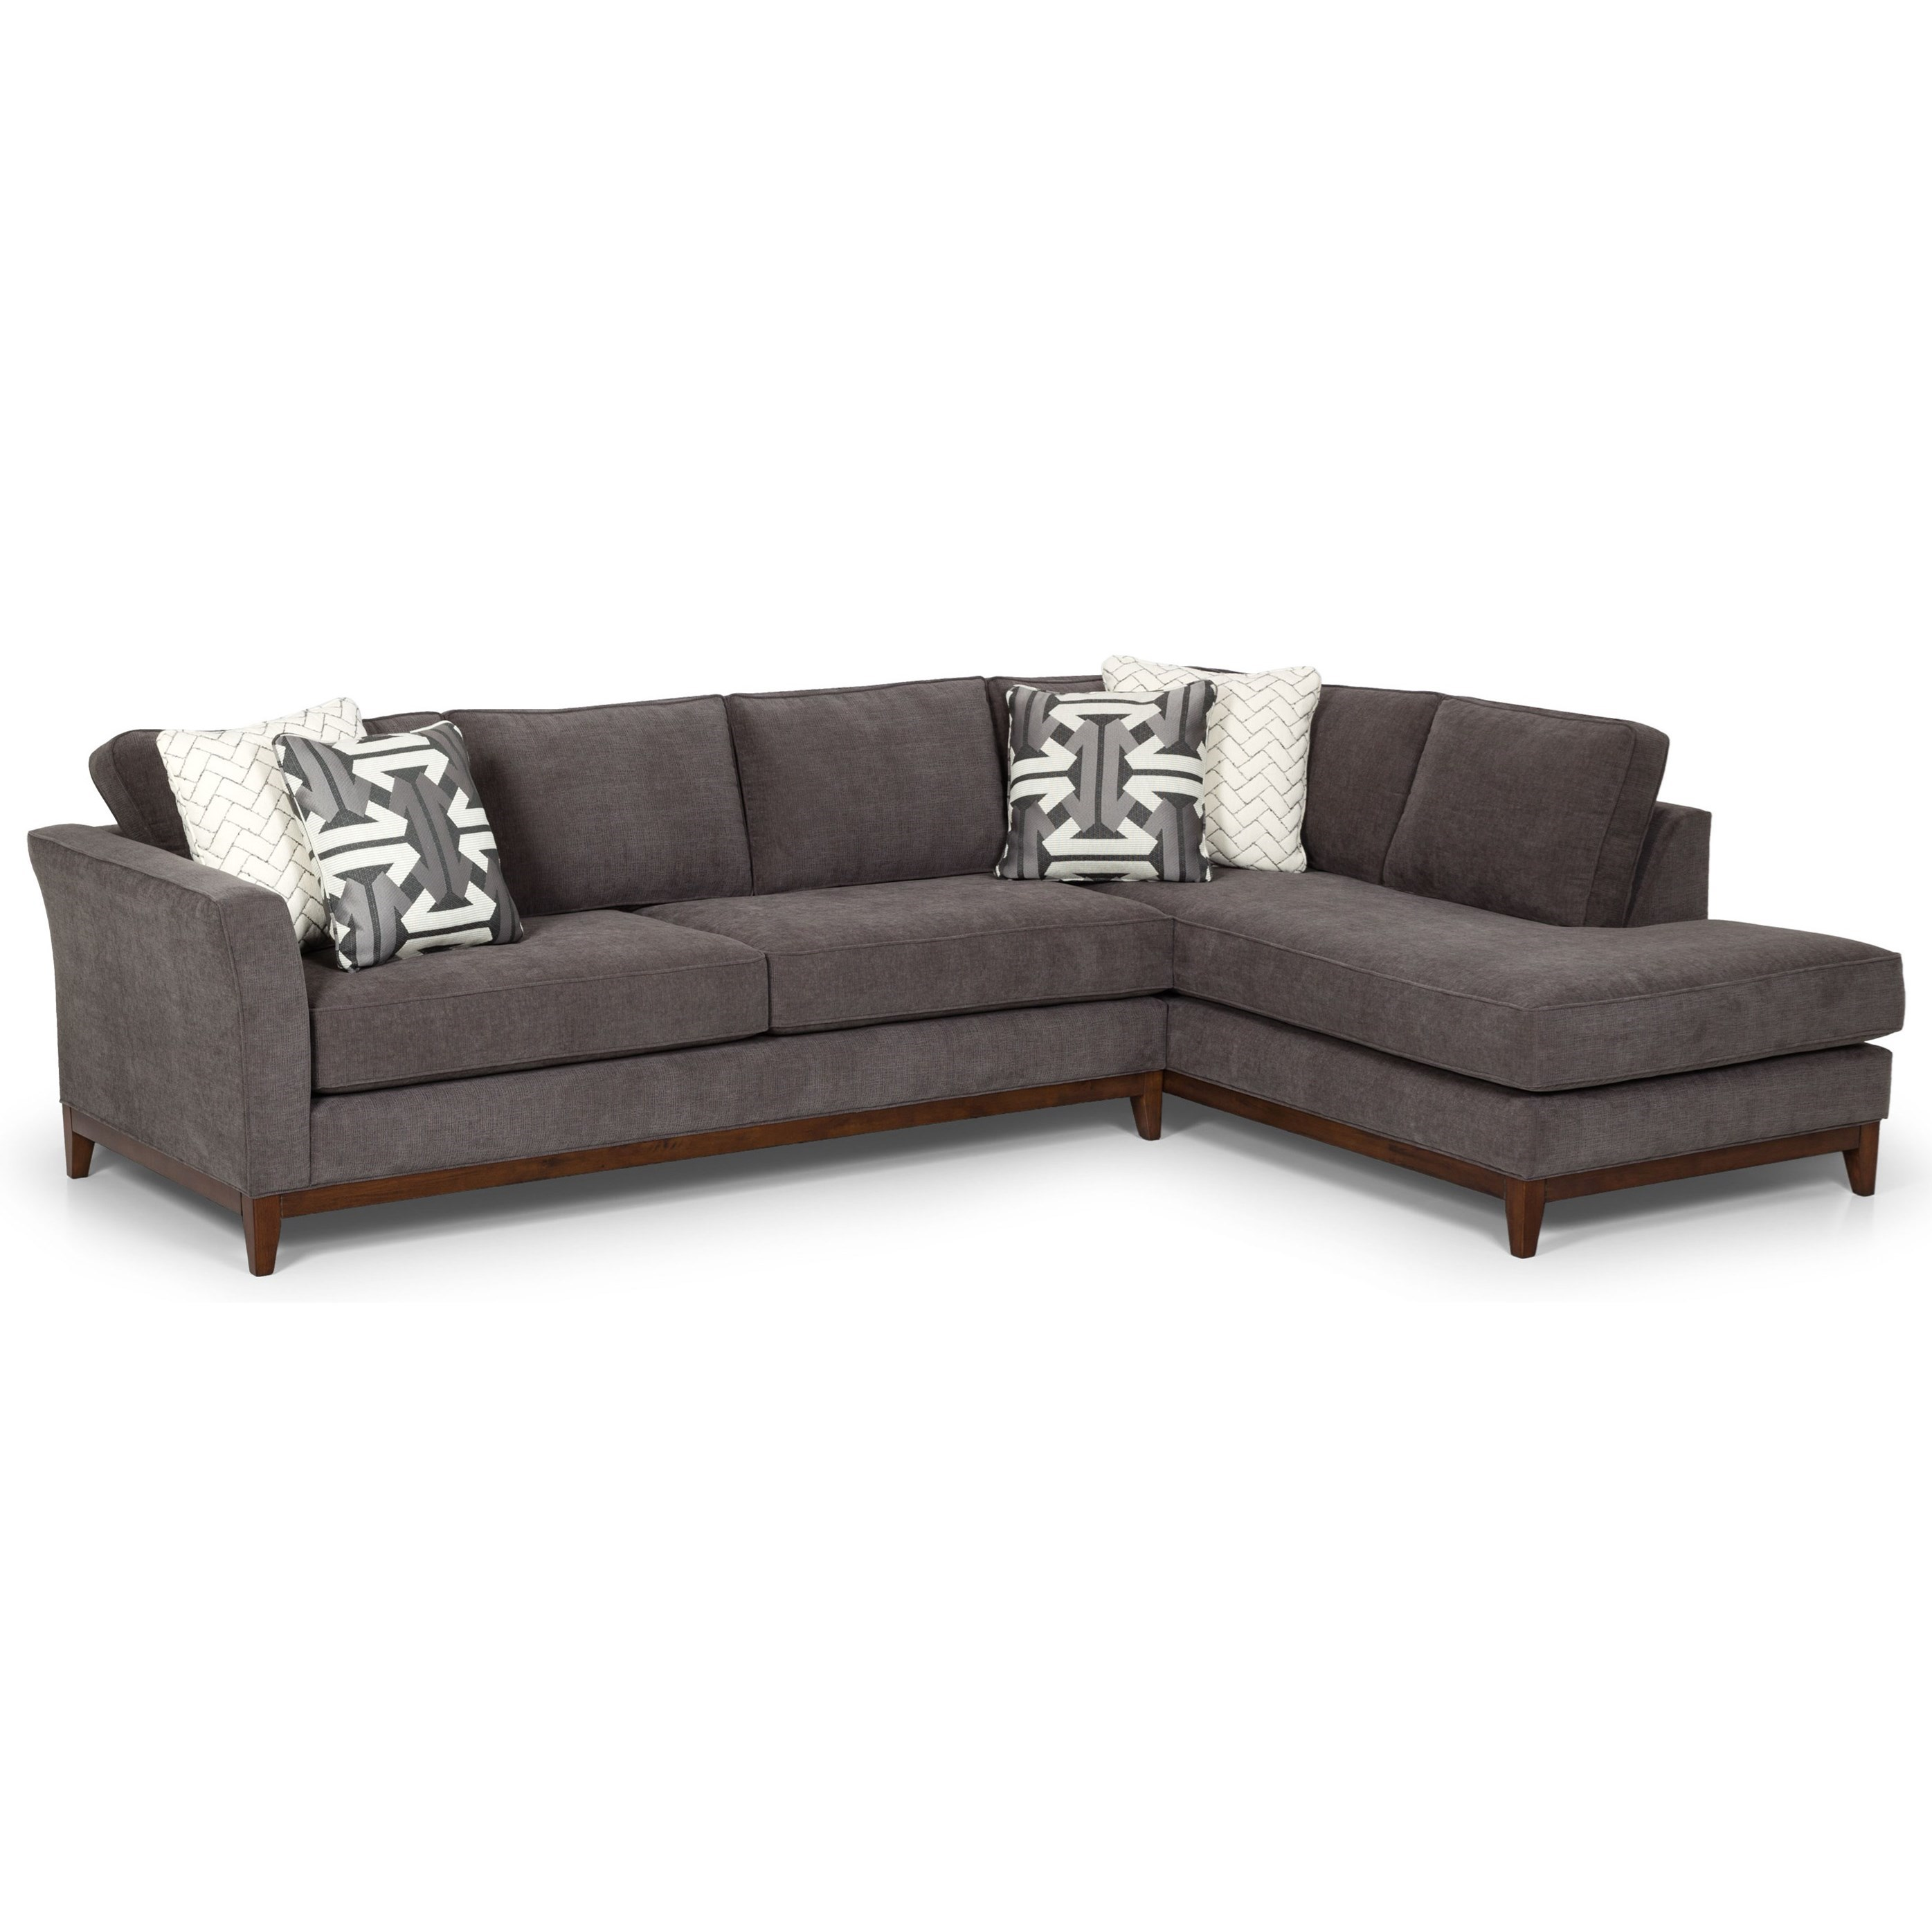 428 2-Piece Sectional by Stanton at Wilson's Furniture